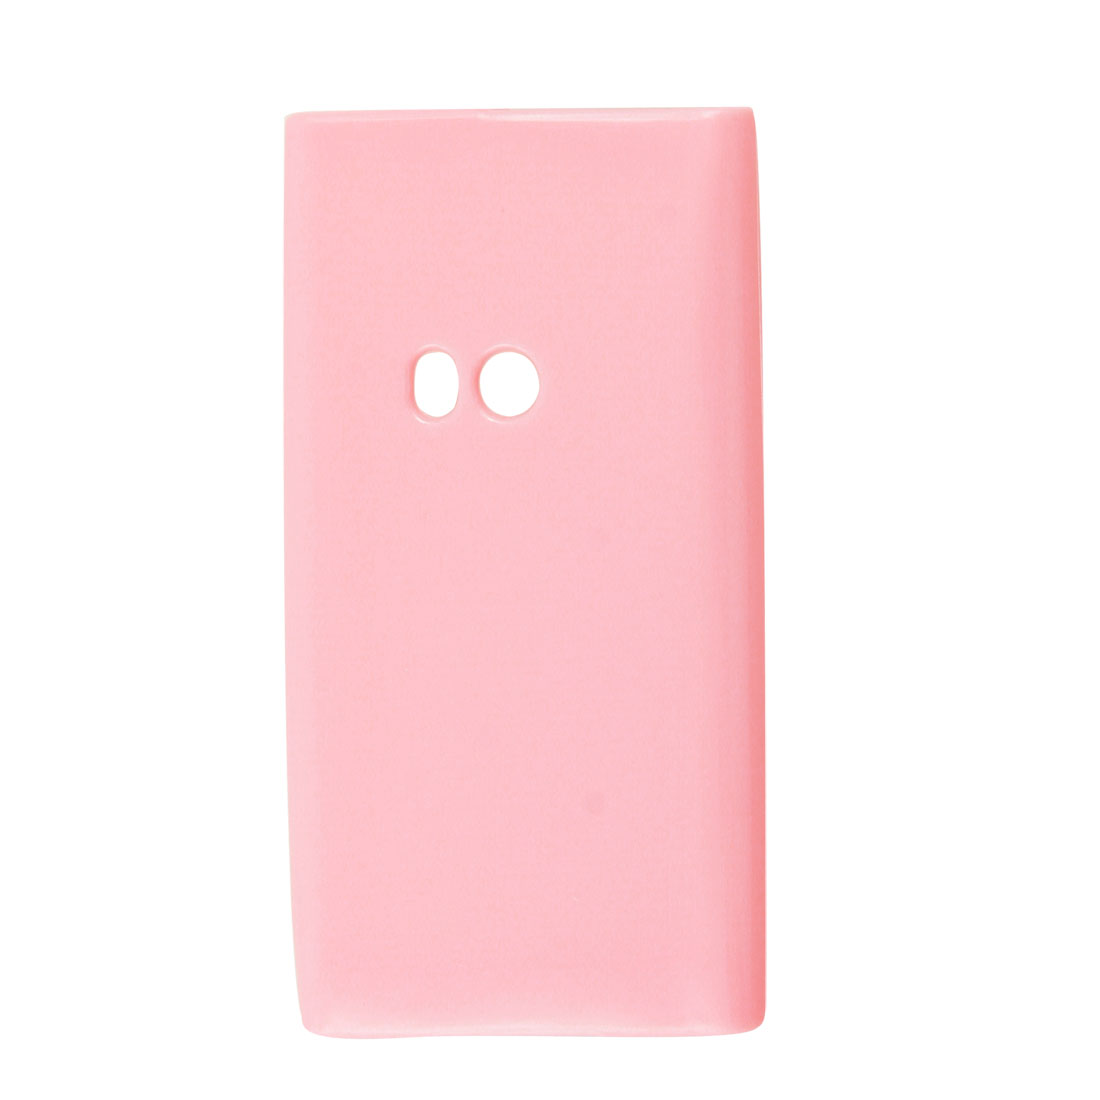 Soft Plastic Shell Cover Protector Pink for Nokia N9